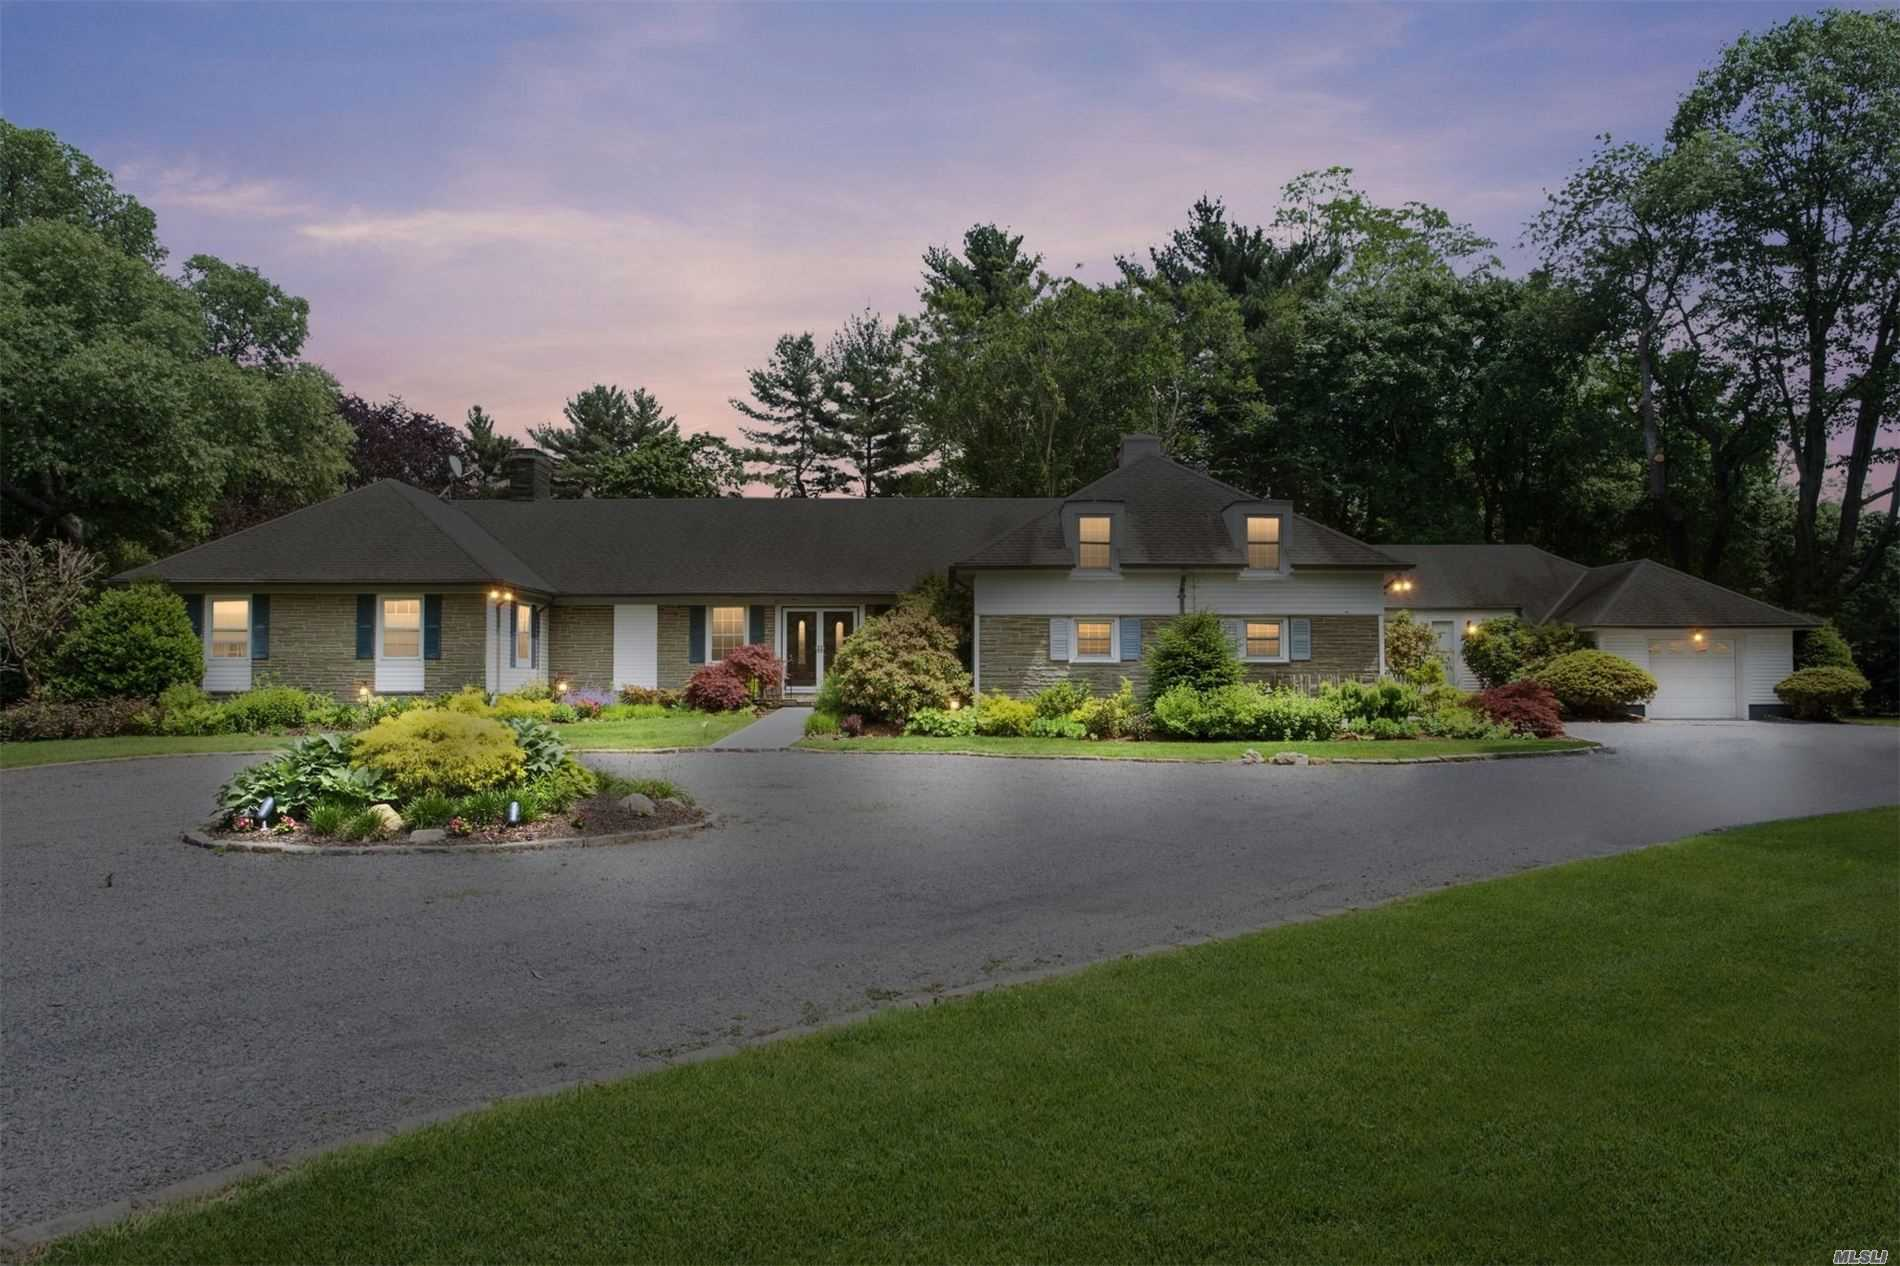 6 Coriegarth Ln - Lattingtown, New York